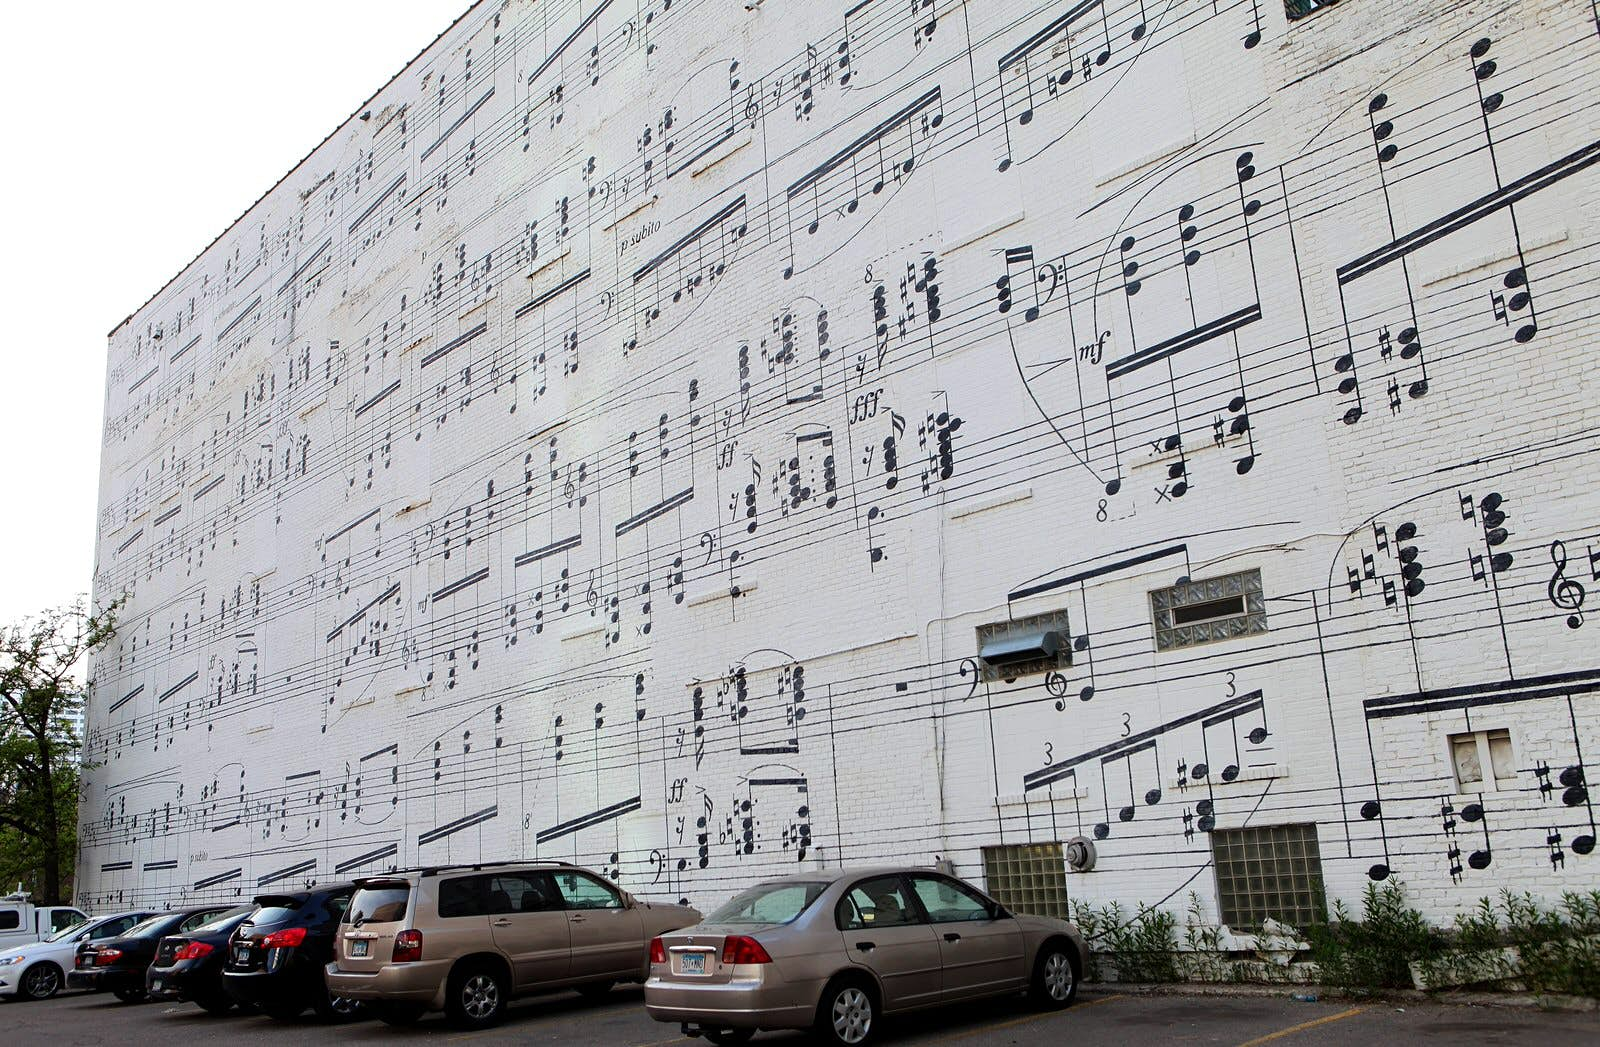 A musical mural on the side of the Schmitt Music Building: the artwork resembles a giant sheet of music, with black music notes painted onto a white background